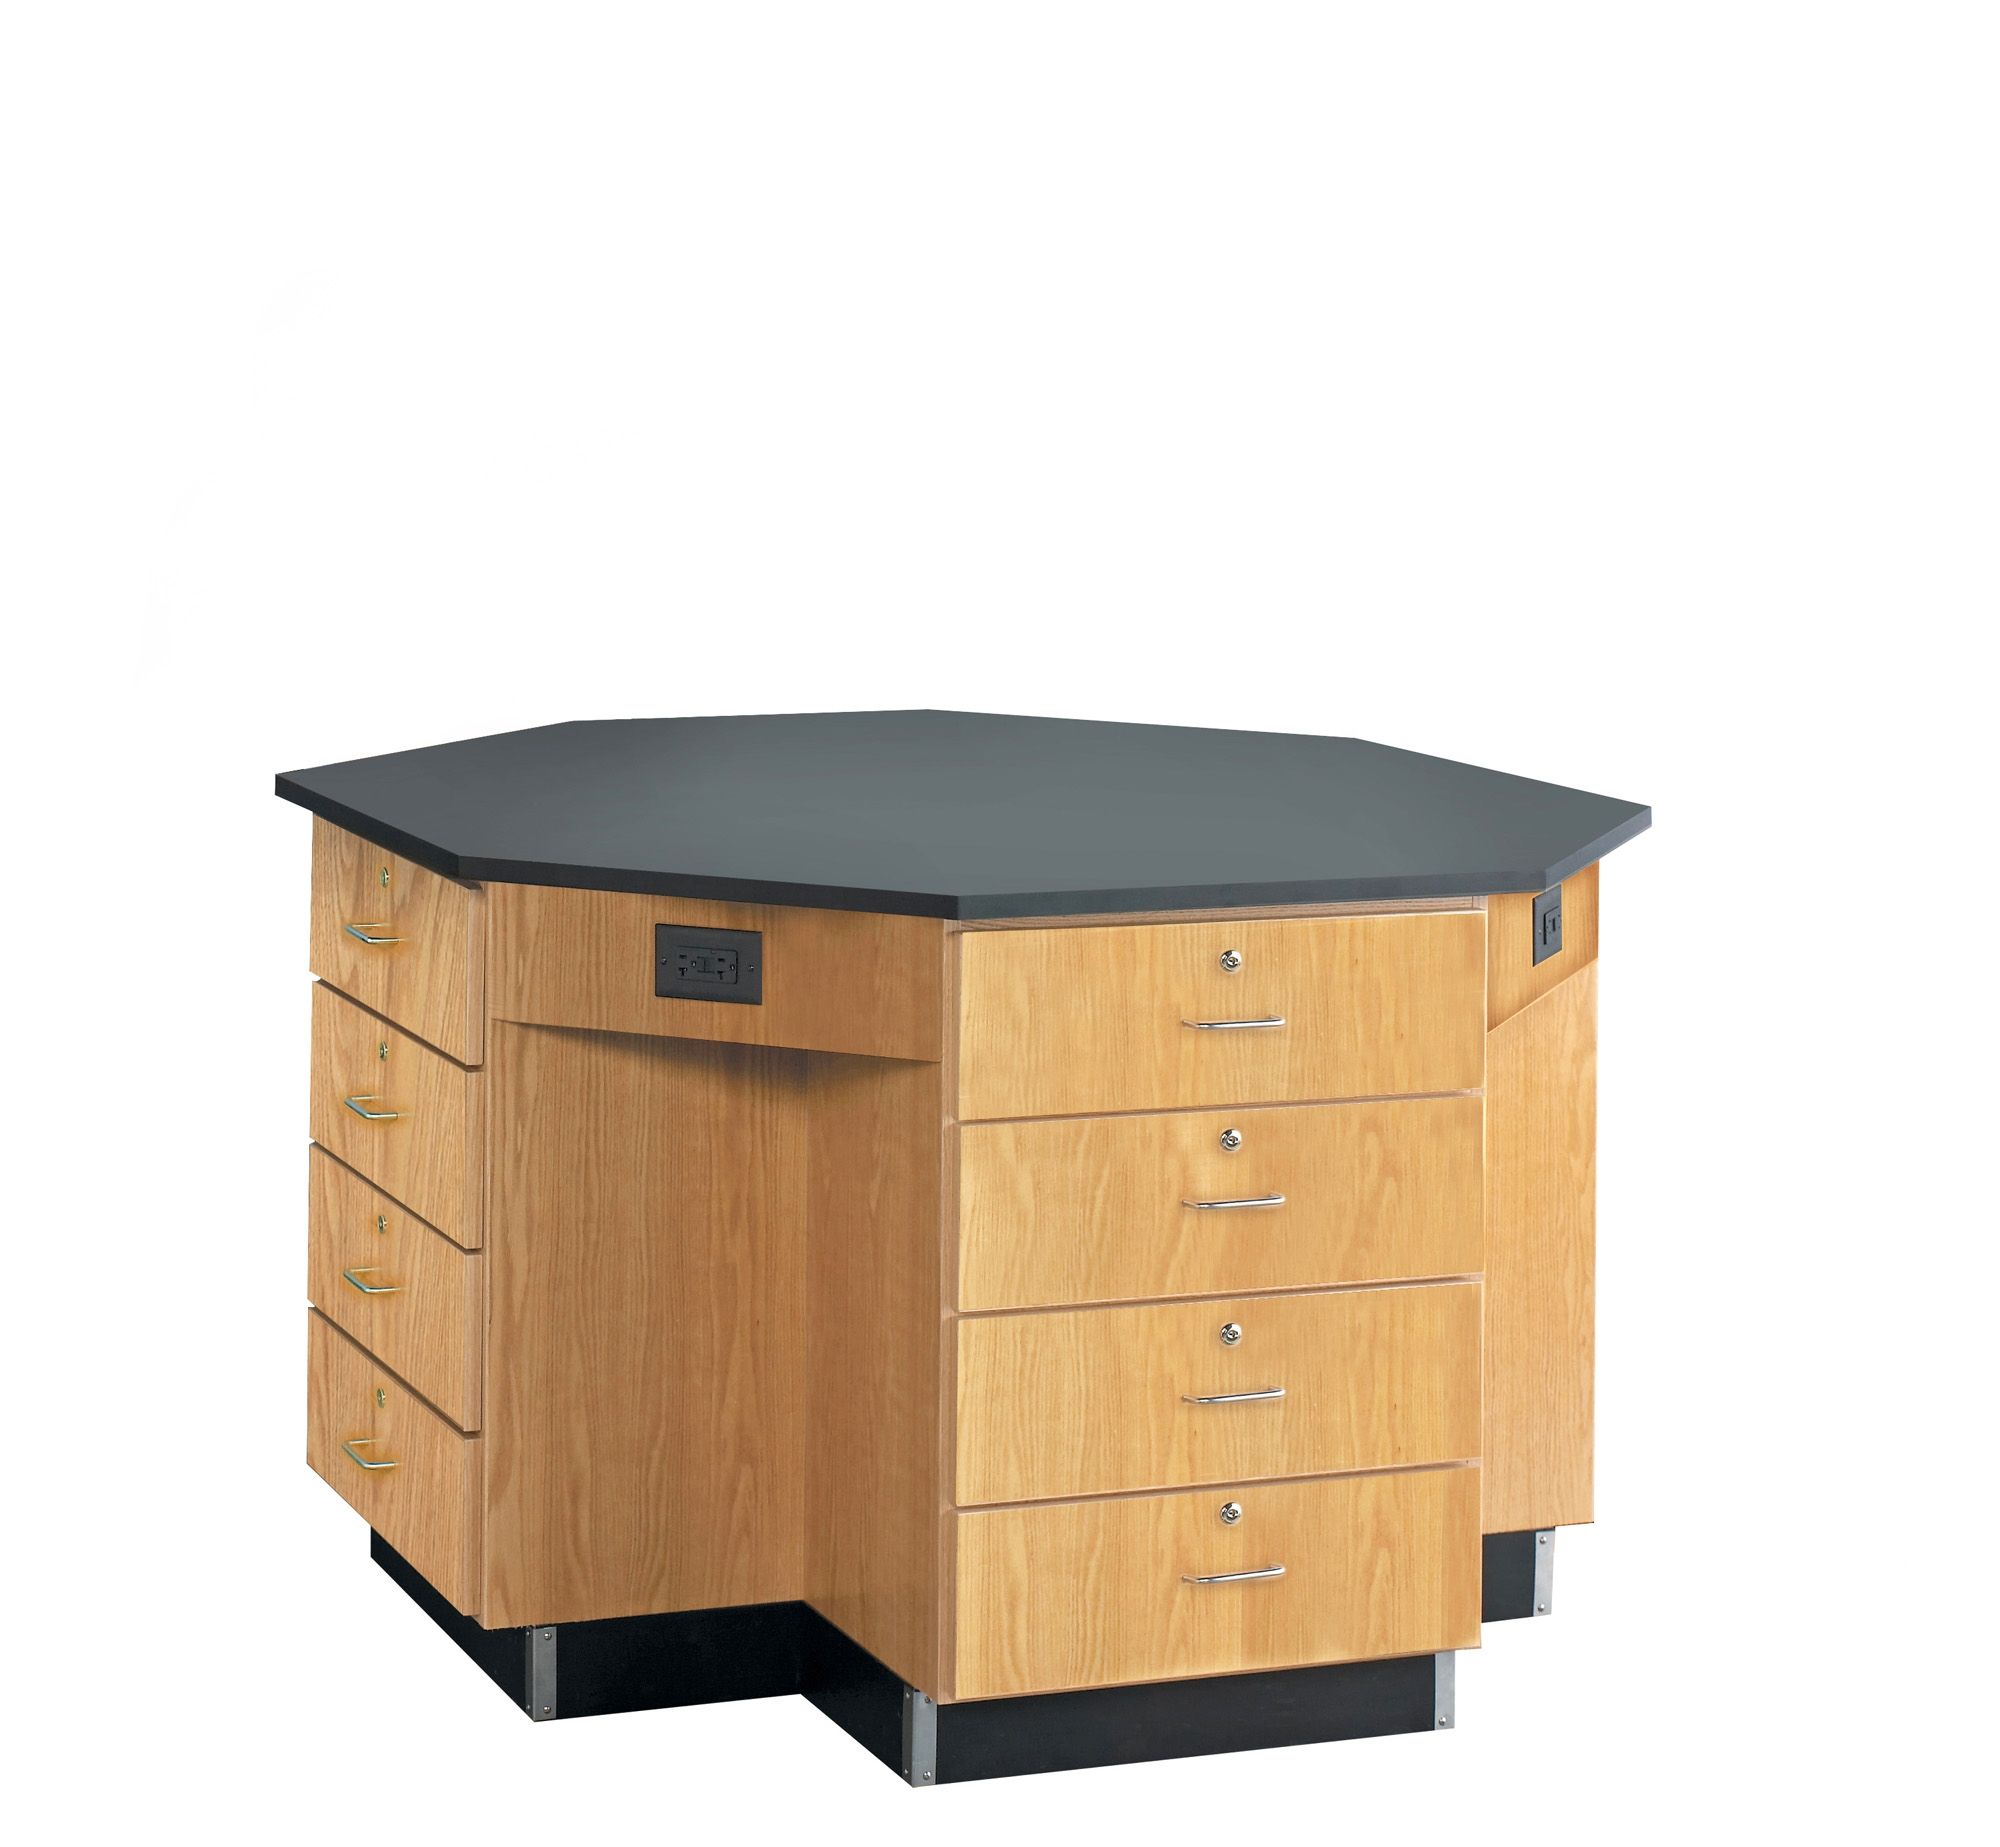 Diversified Woodcrafts Octagon Workstation with Drawer Base - Epoxy Top